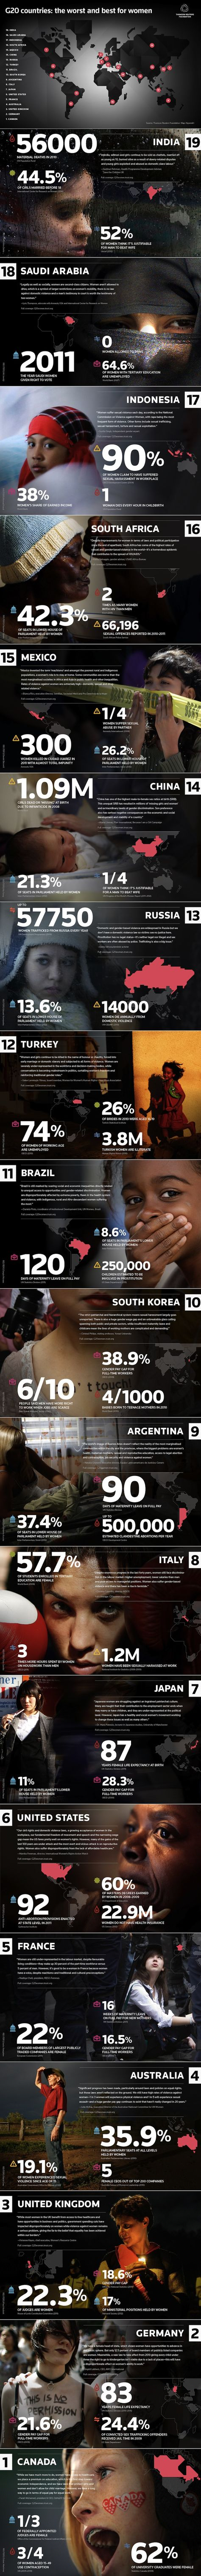 13 best UN MDG 3 Gender Equality & Women Empowerment images on Pinterest